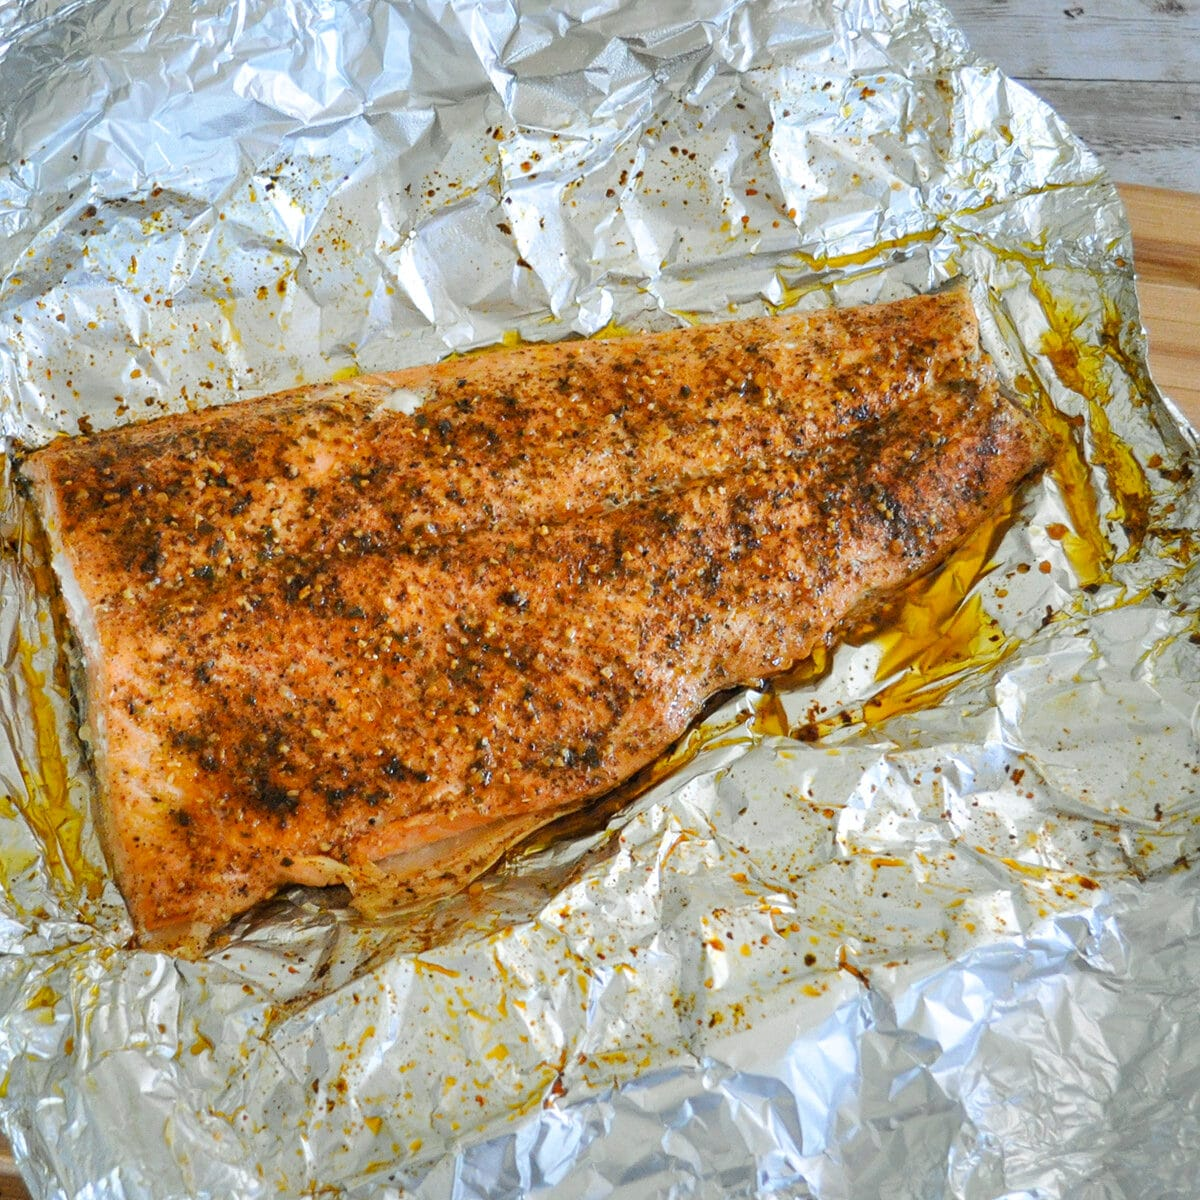 just cooked salmon on foil